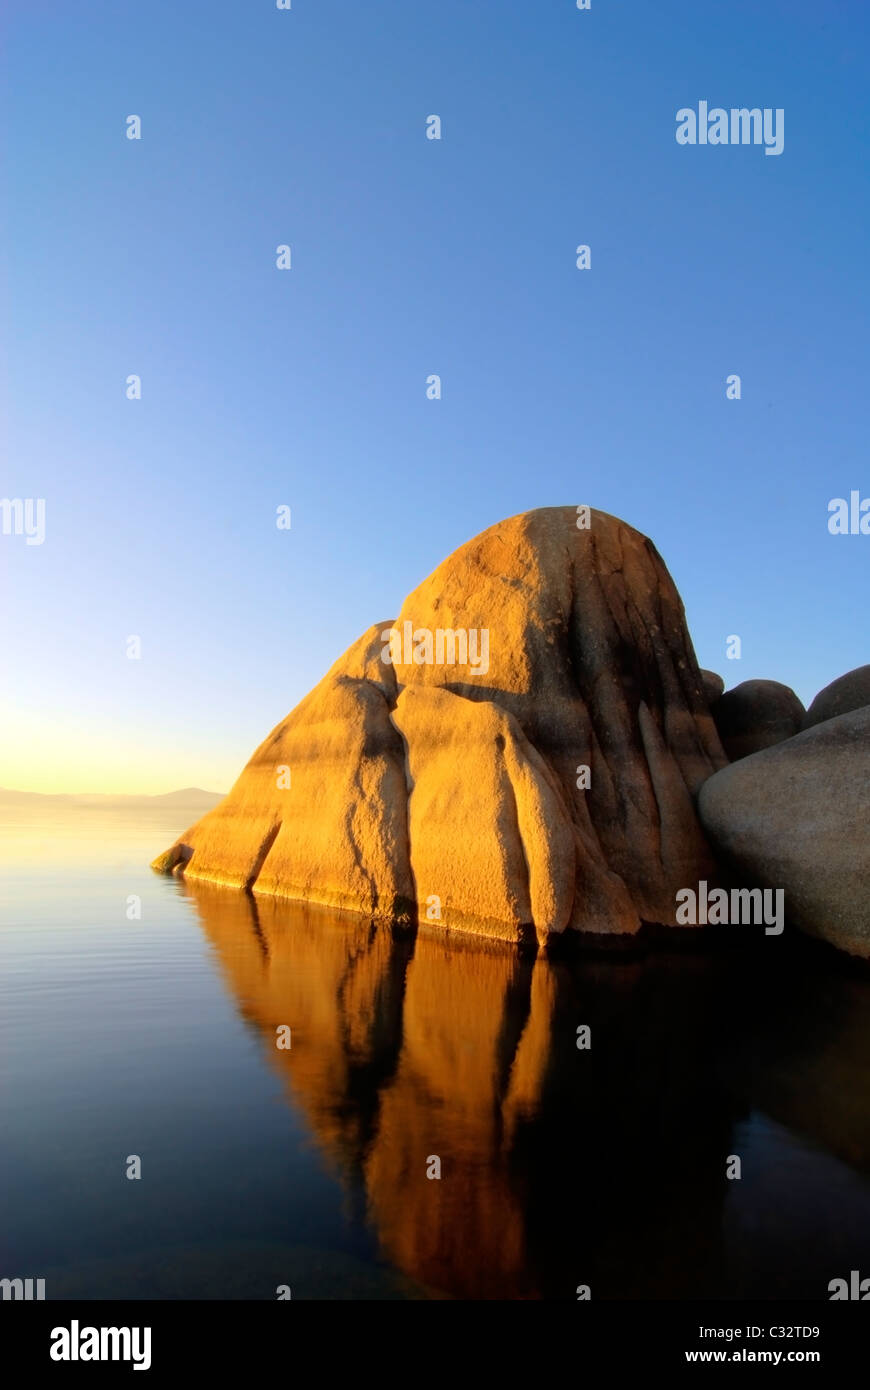 A large granite boulder is illuminated at sunset on the east shore of Lake Tahoe, NV. - Stock Image